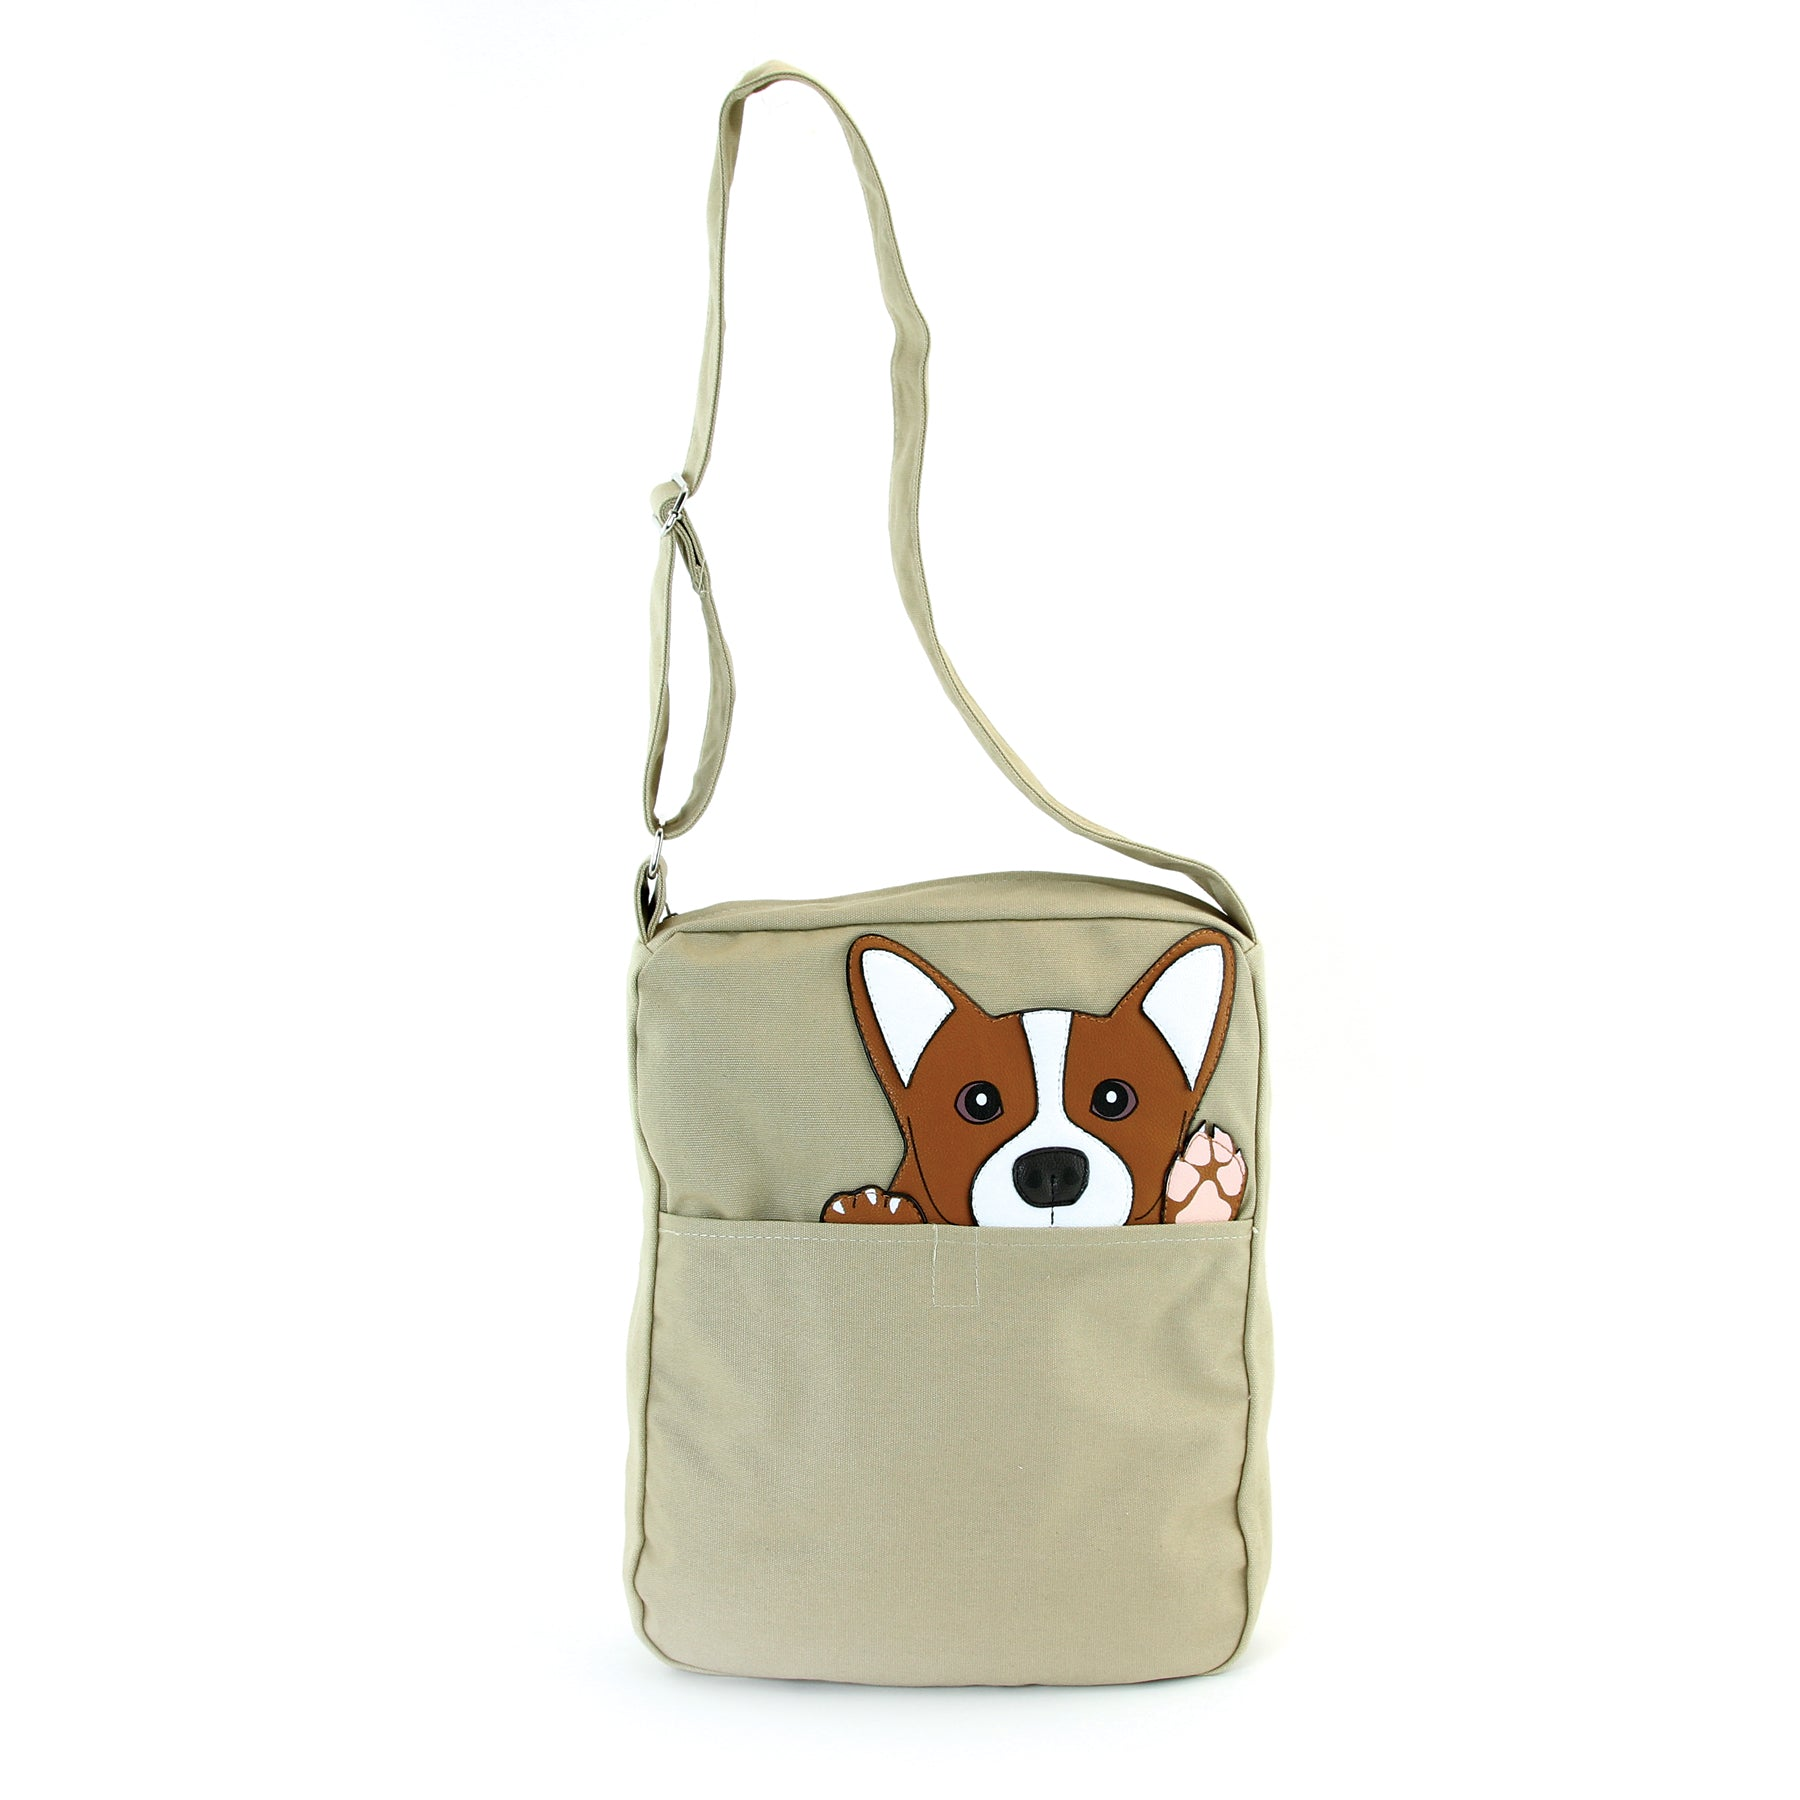 Peeking Corgi Messenger in Canvas Material front view